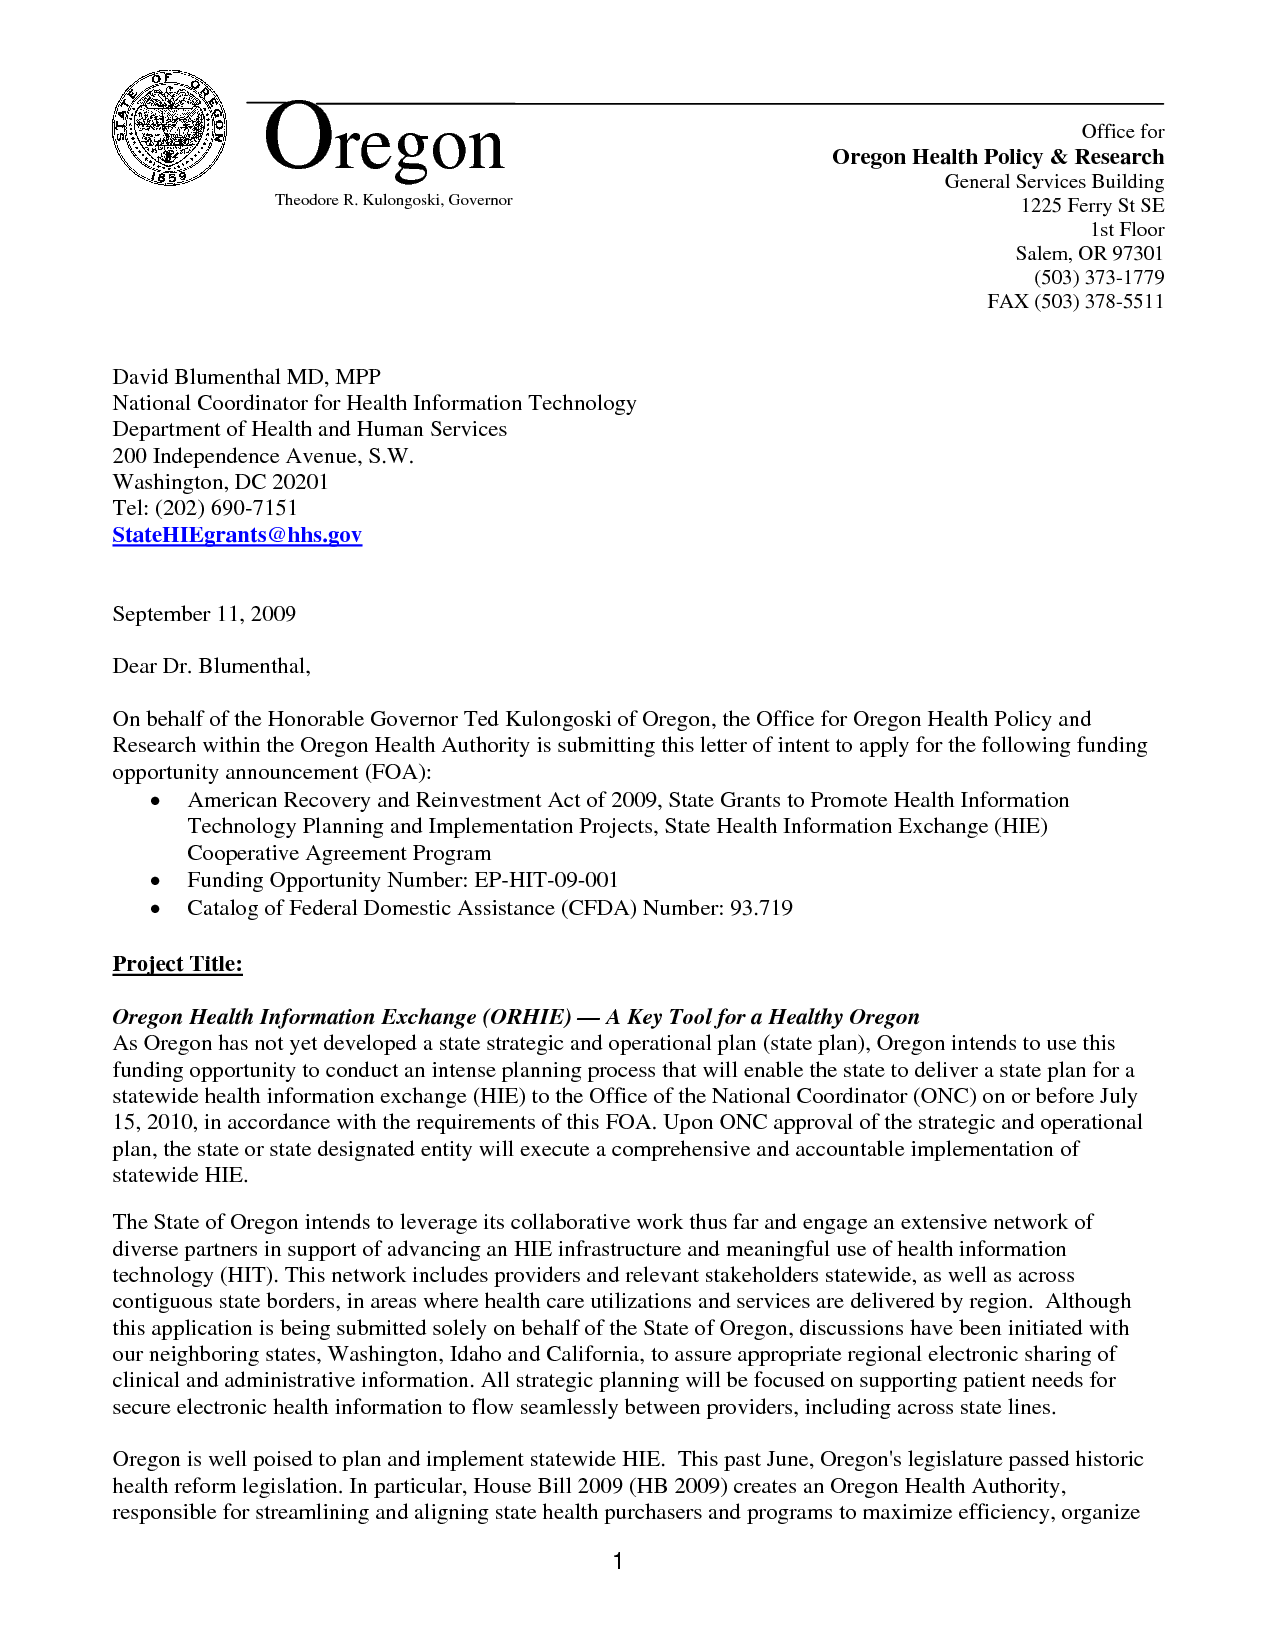 sample business partnership letter example requesting